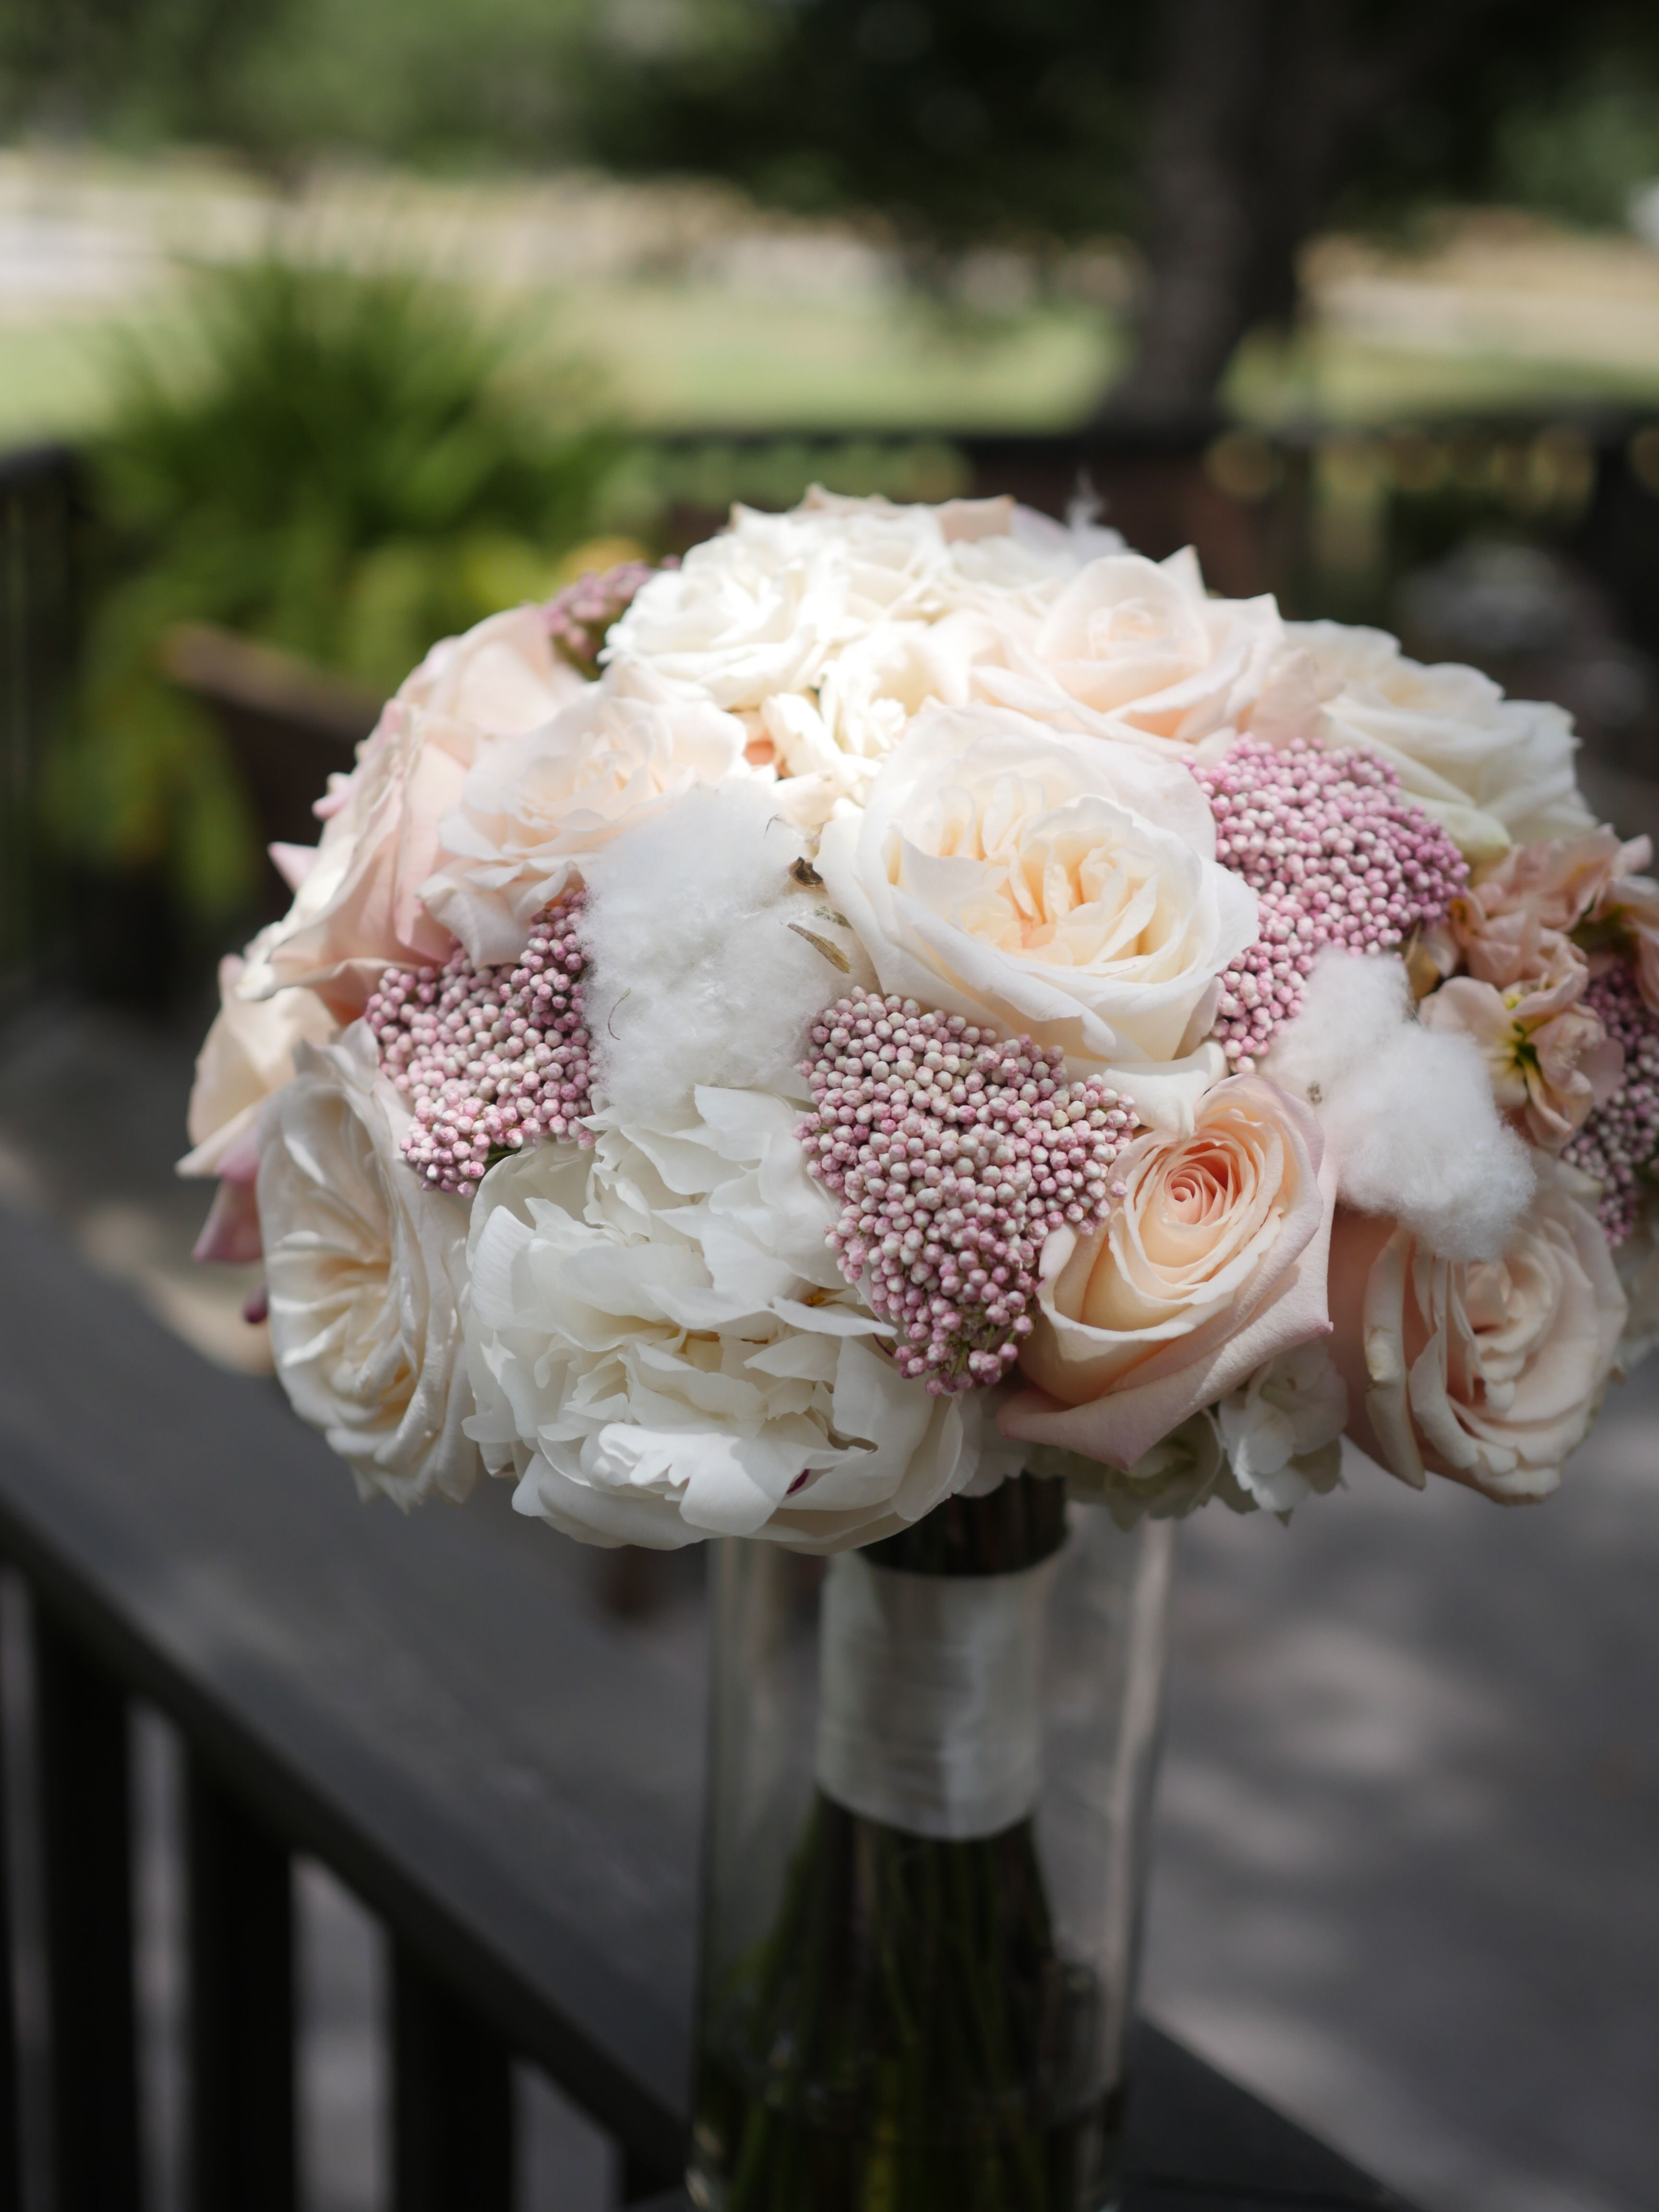 This soft and elegant bouquet was designed with white roses light this soft and elegant bouquet was designed with white roses light pink rice flower and cotton whim florals mightylinksfo